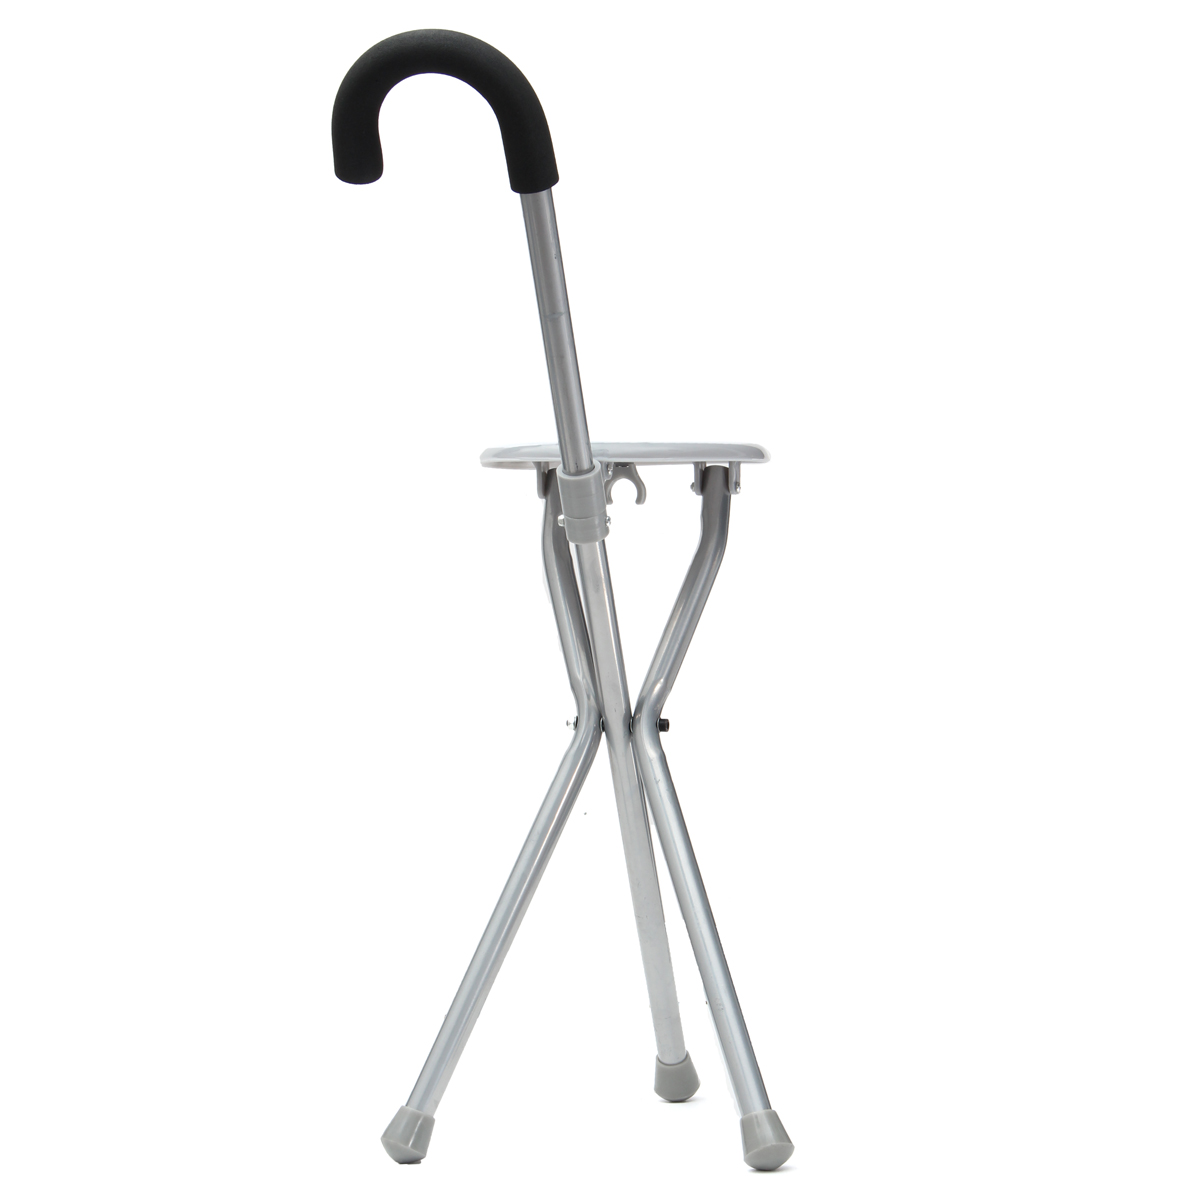 Outdoor Travel Folding Stool Chair Portable Tripod Cane Walking Stick Seat Camping Hiking